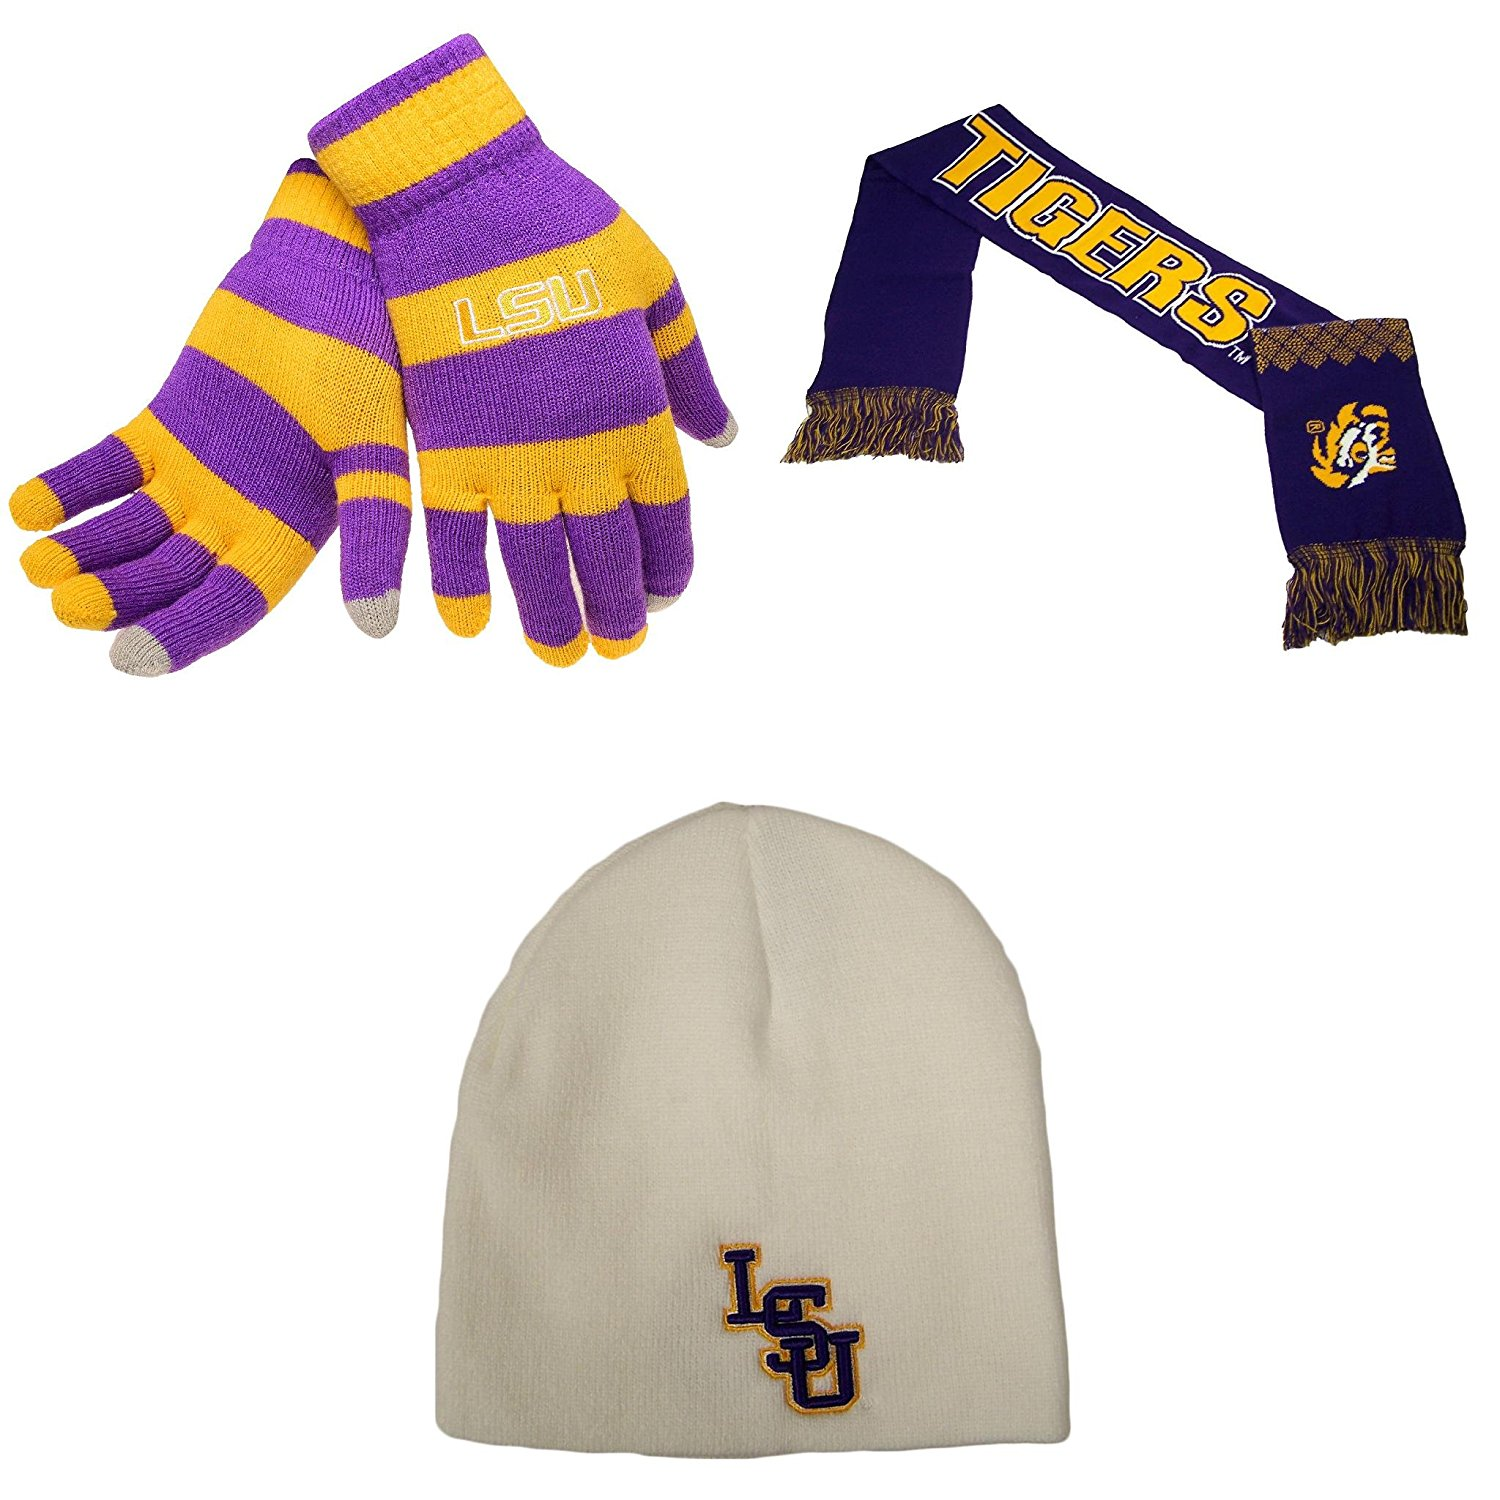 newest 4c341 6b6de Get Quotations · NCAA LSU Tigers Glove Stripe Knit Campus Team Scarf And Ez  Dozit Beanie 3 Pack Bundle